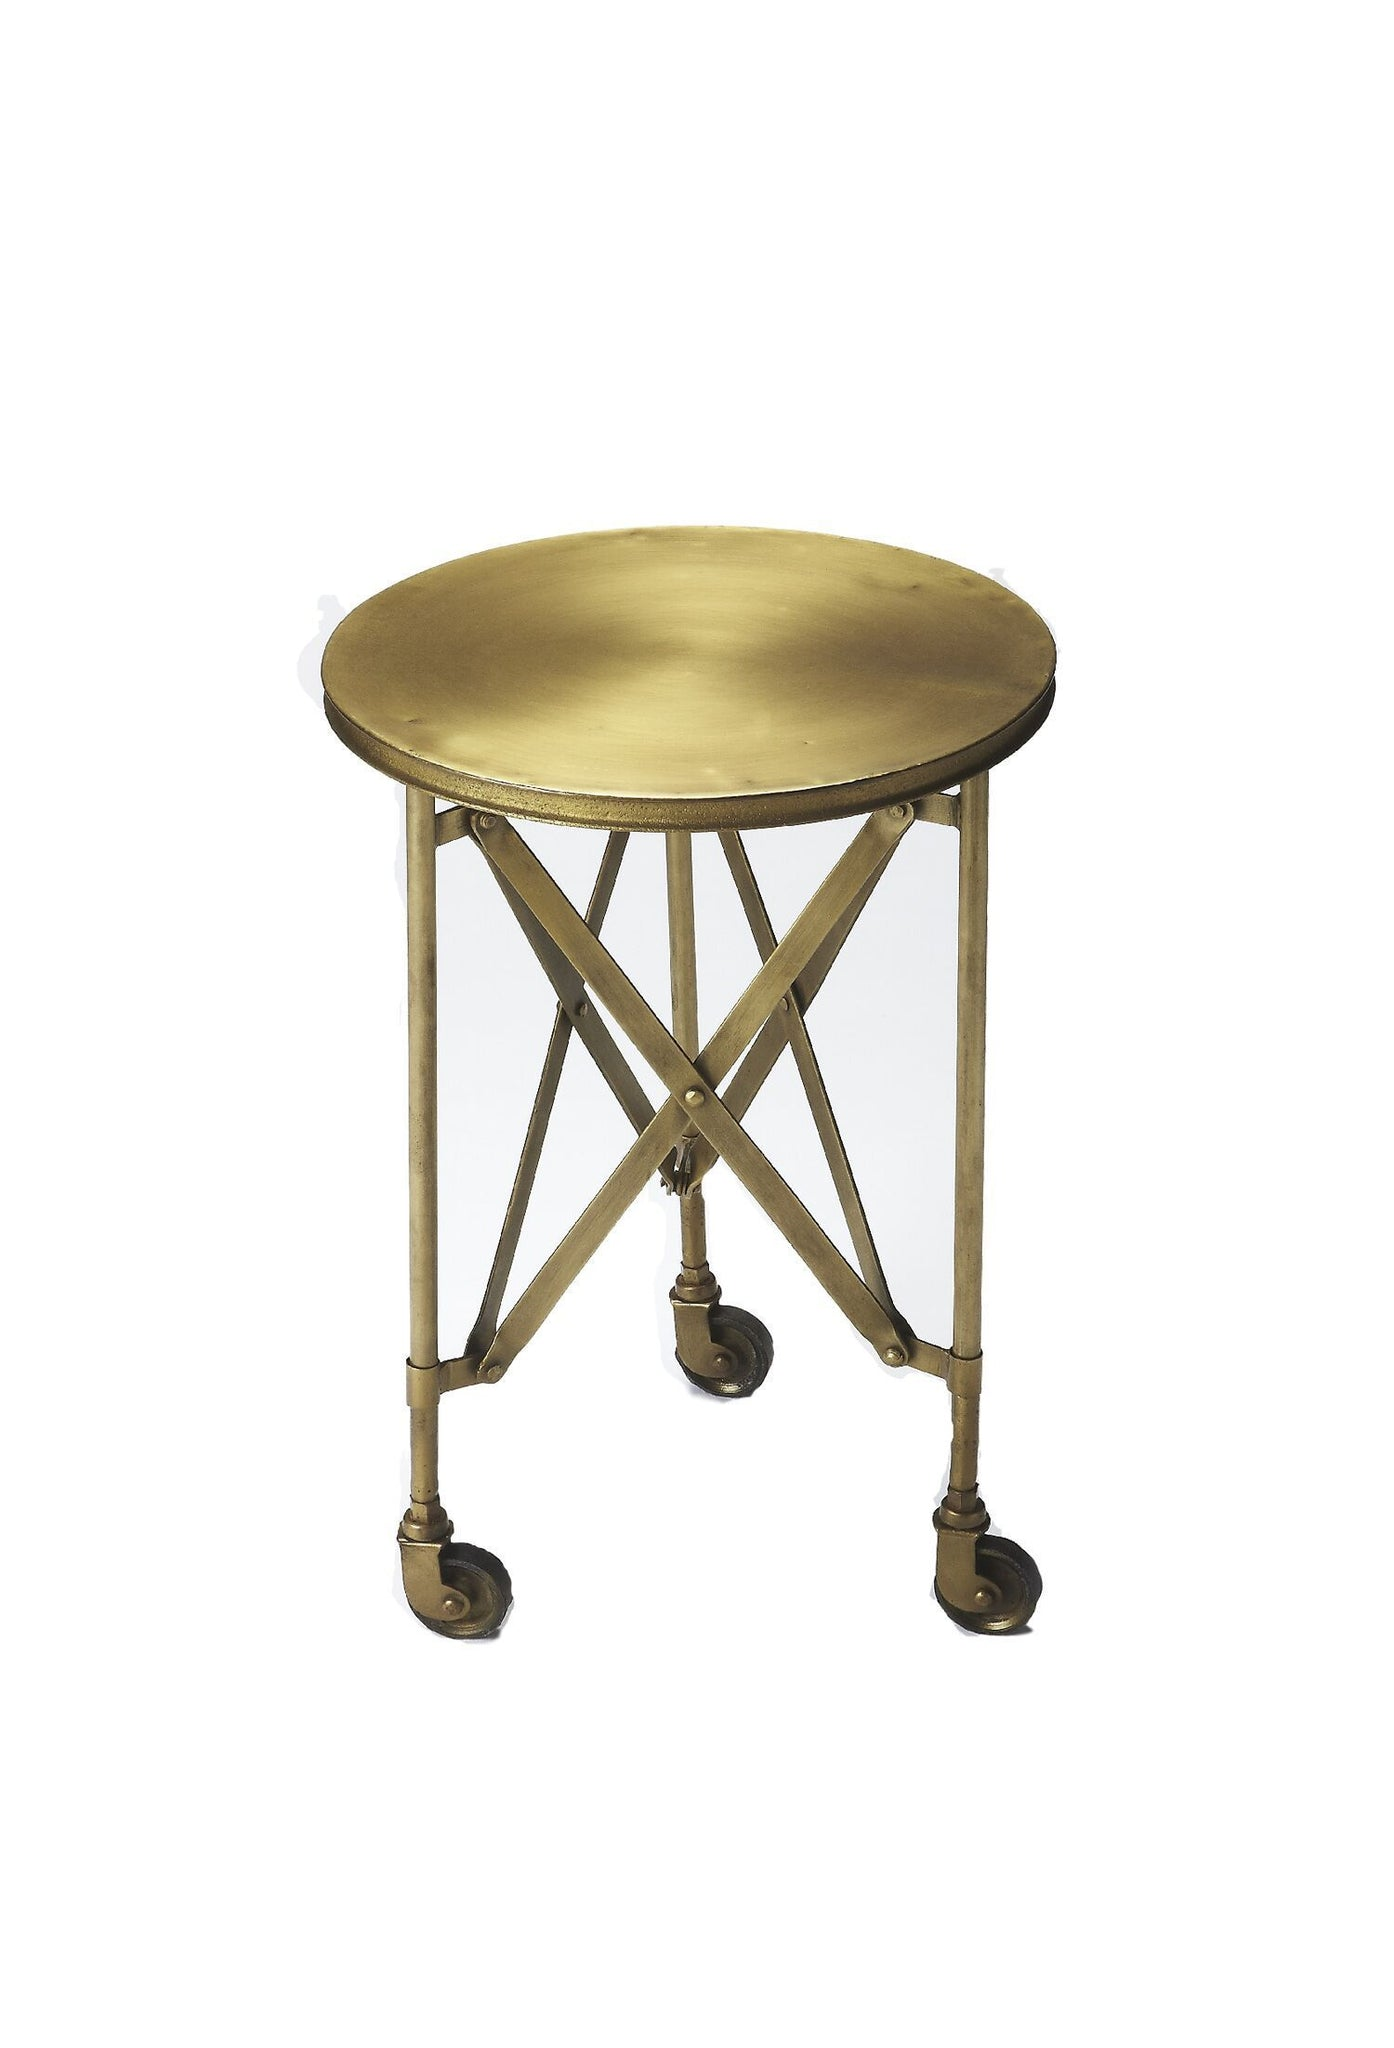 Costigan Antique Gold Accent Table